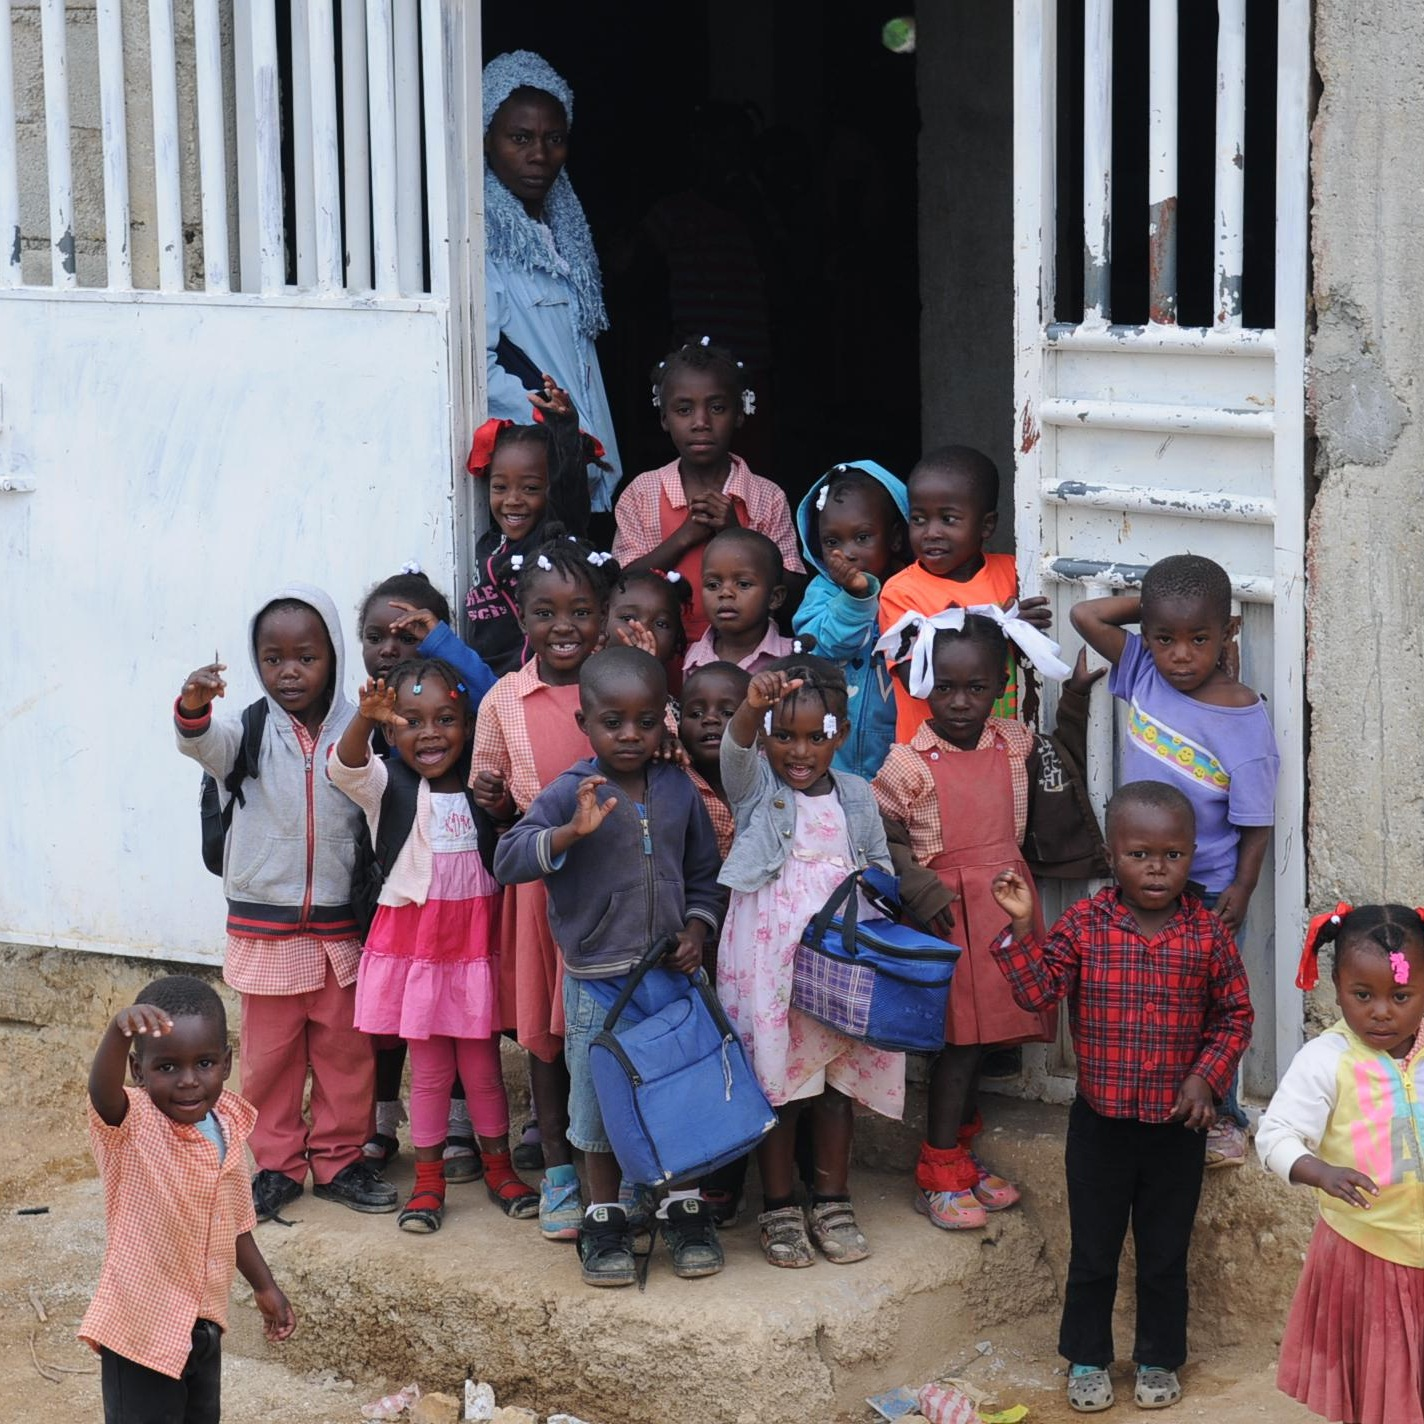 New Birth School - Welcome to the New Birth School in the beautiful mountains of Belot, Haiti. Pastor Reginald Constant established this school in 2010, but it didn't always look like this.